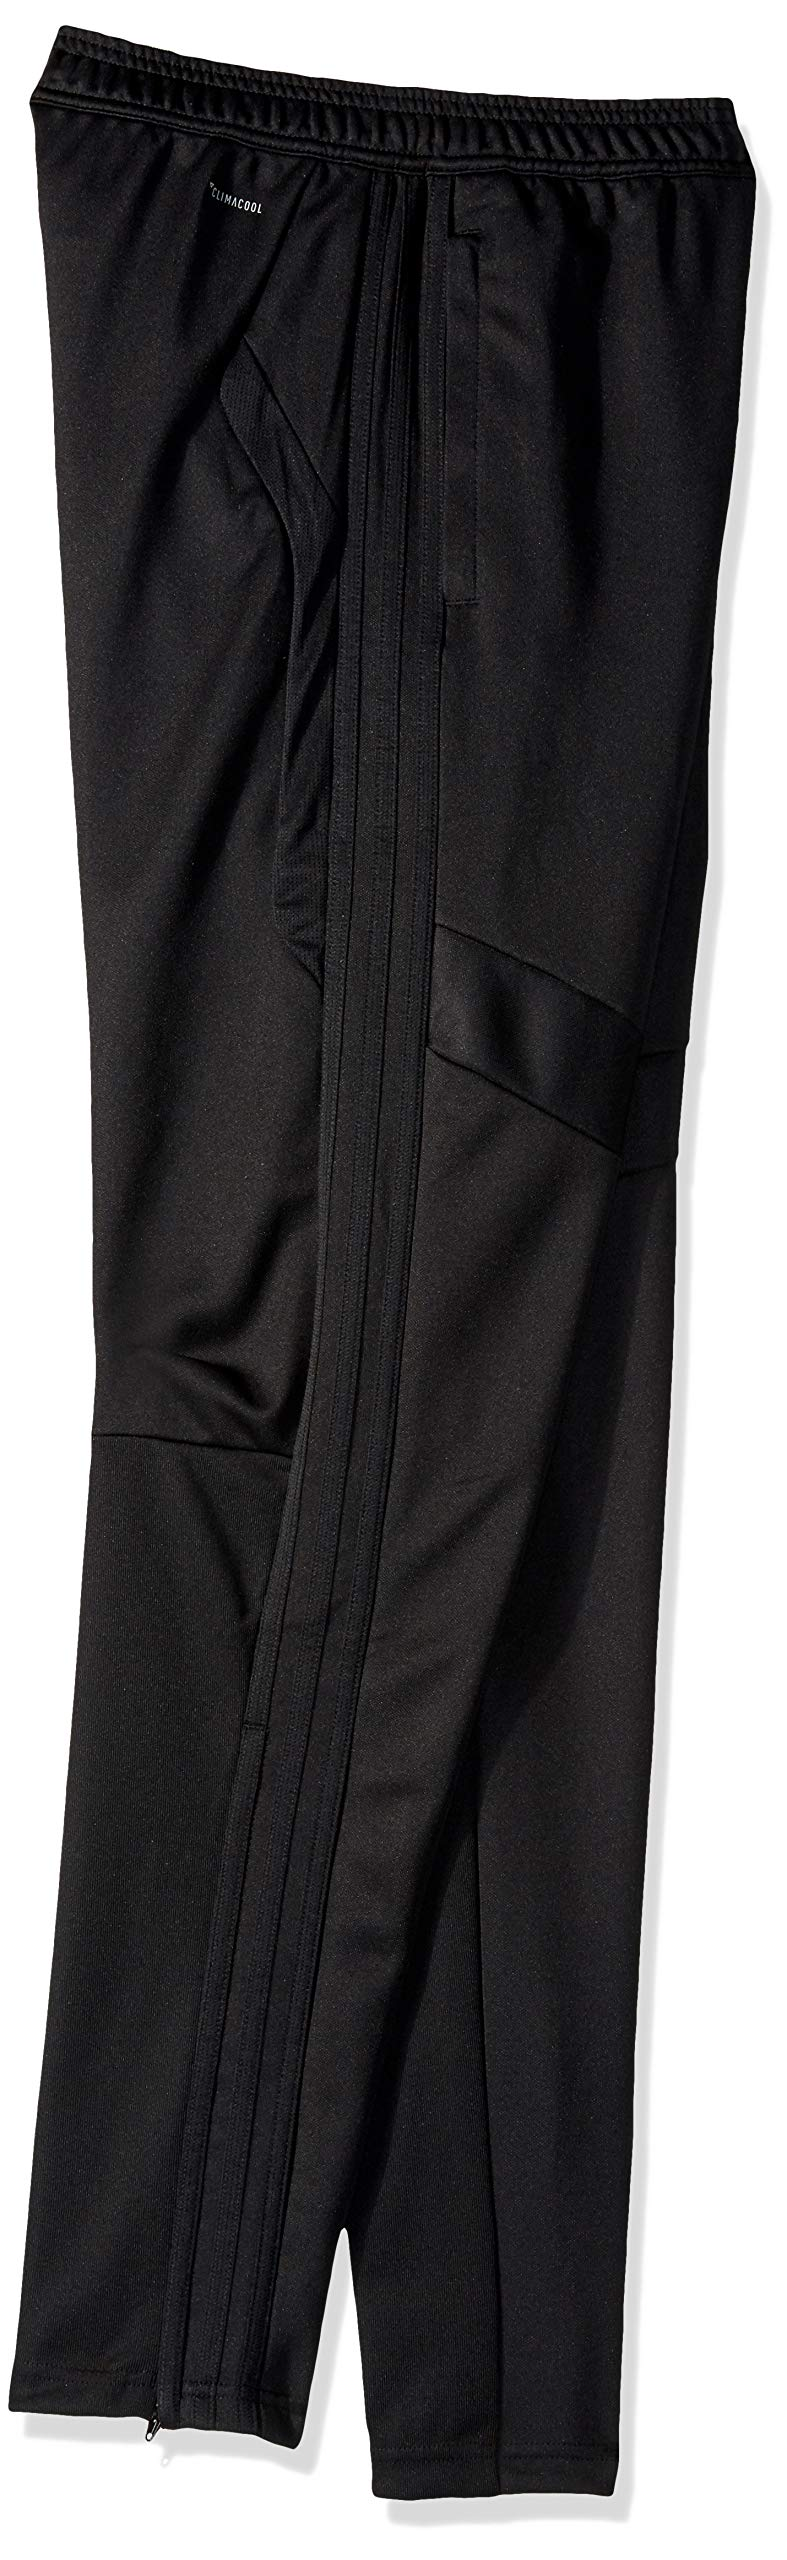 adidas Youth Tiro19 Youth Training Pants, Black, X-Small by adidas (Image #2)